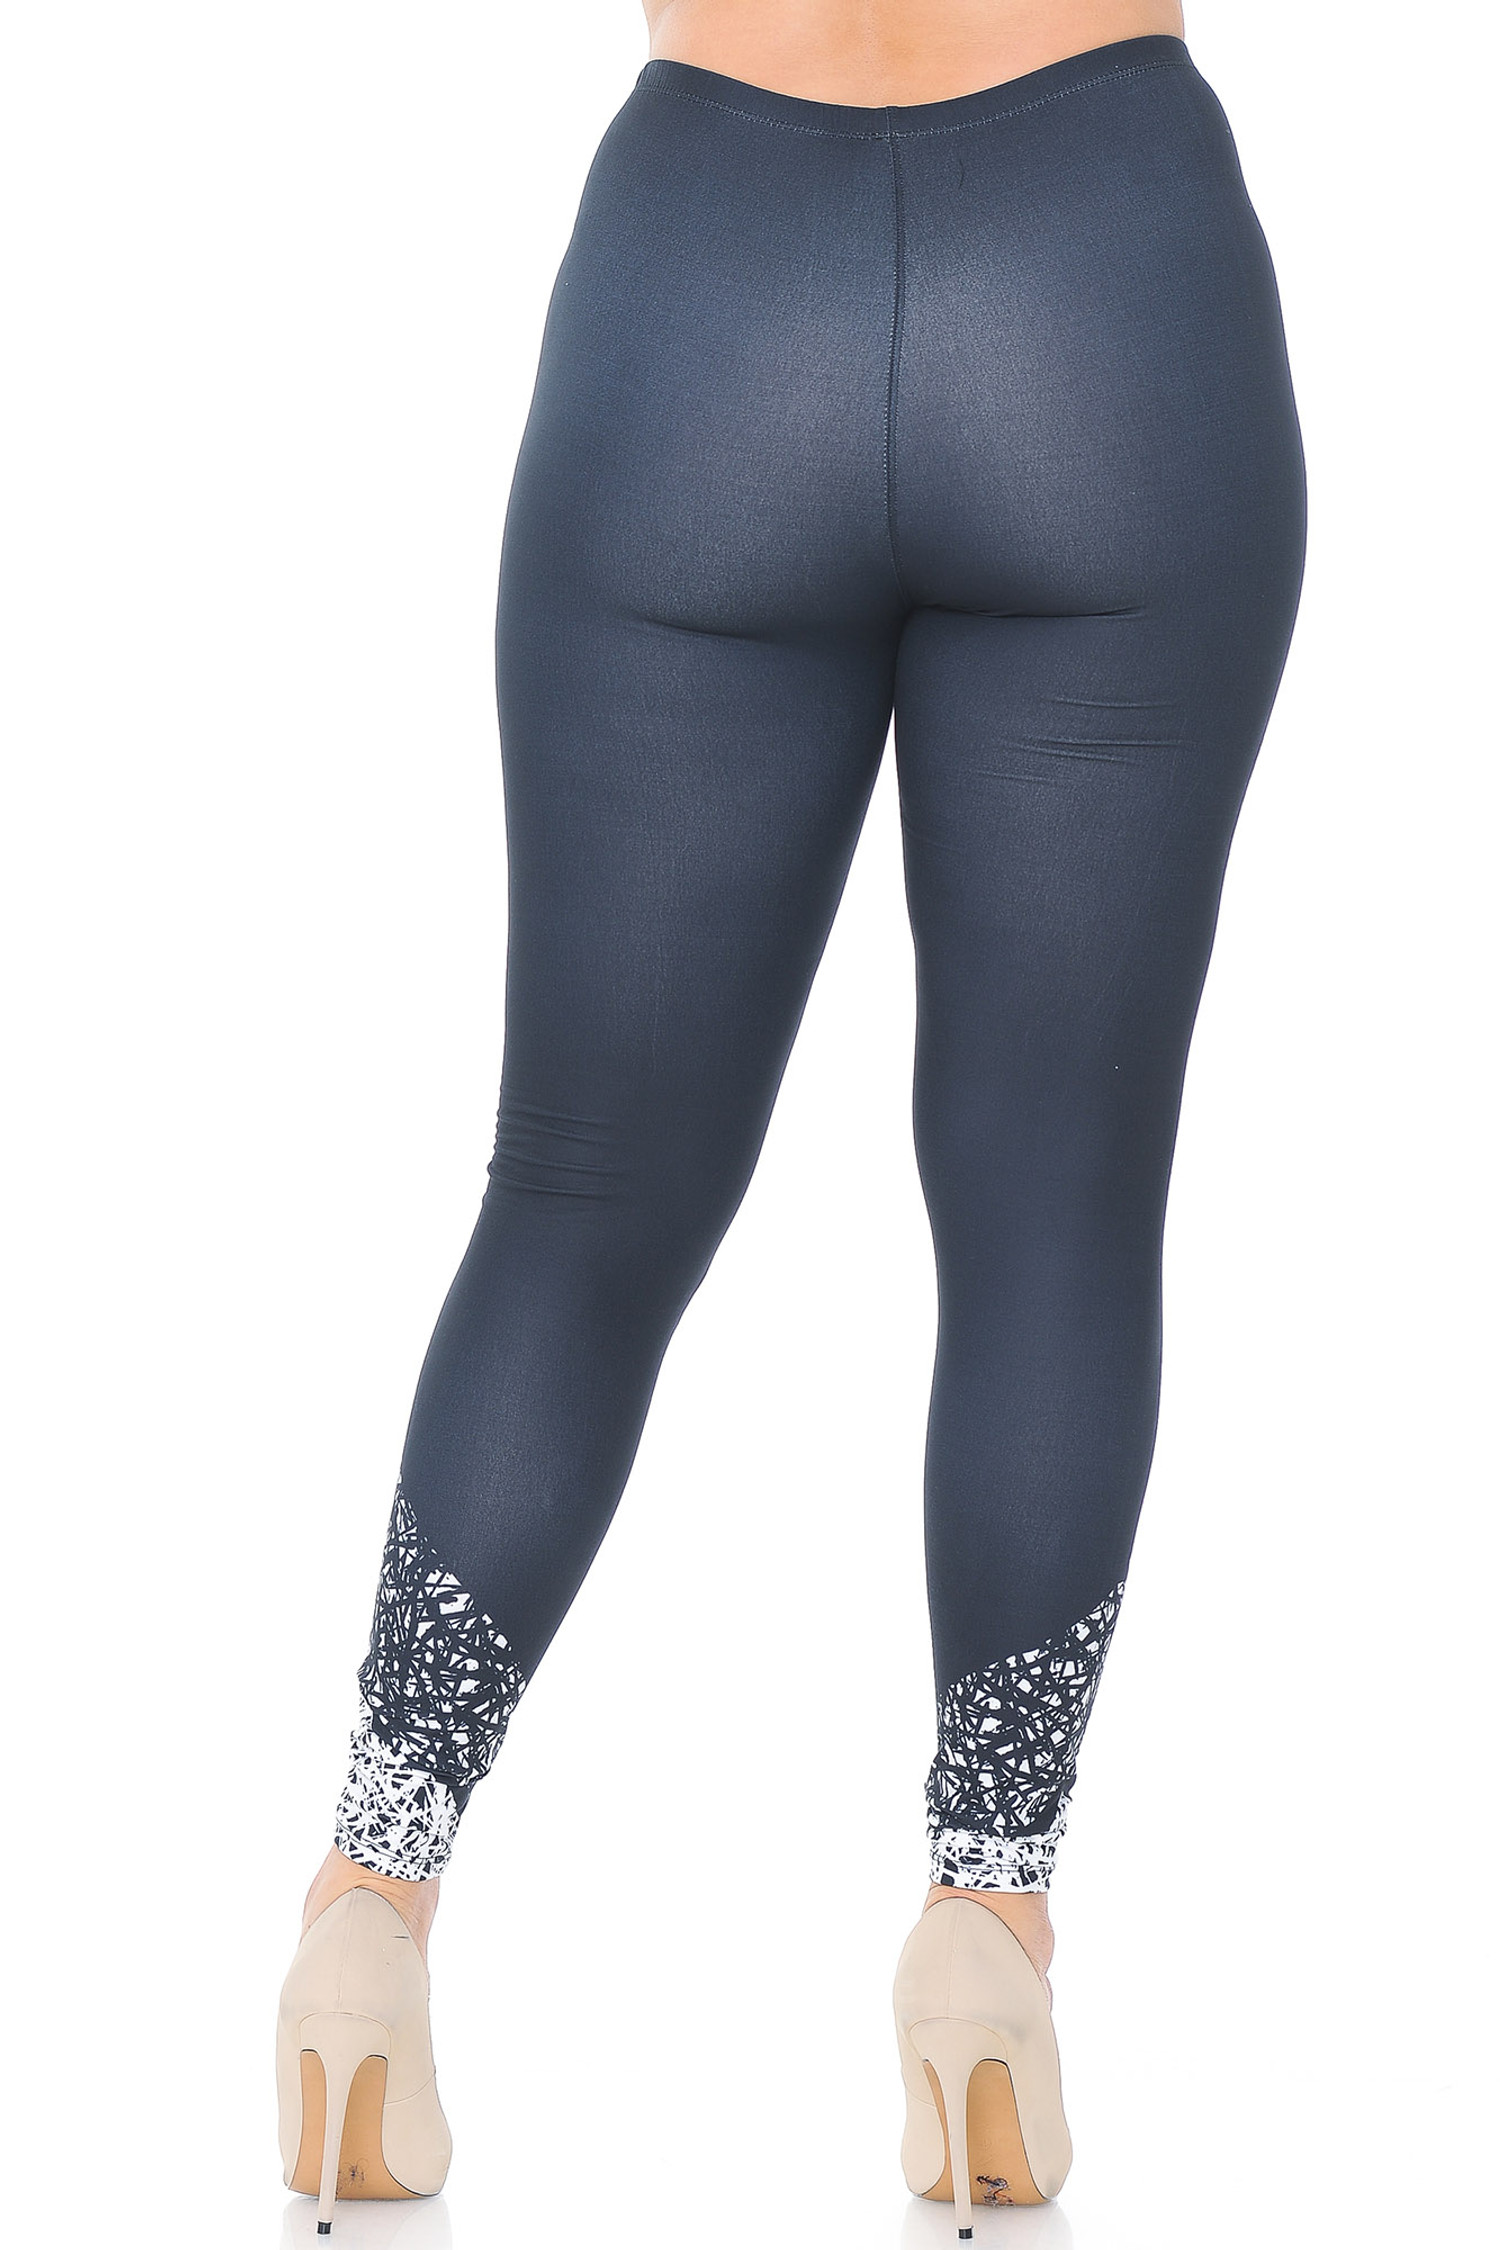 Creamy Soft Ebony Escapade Extra Plus Size Leggings - 3X-5X - USA Fashion™